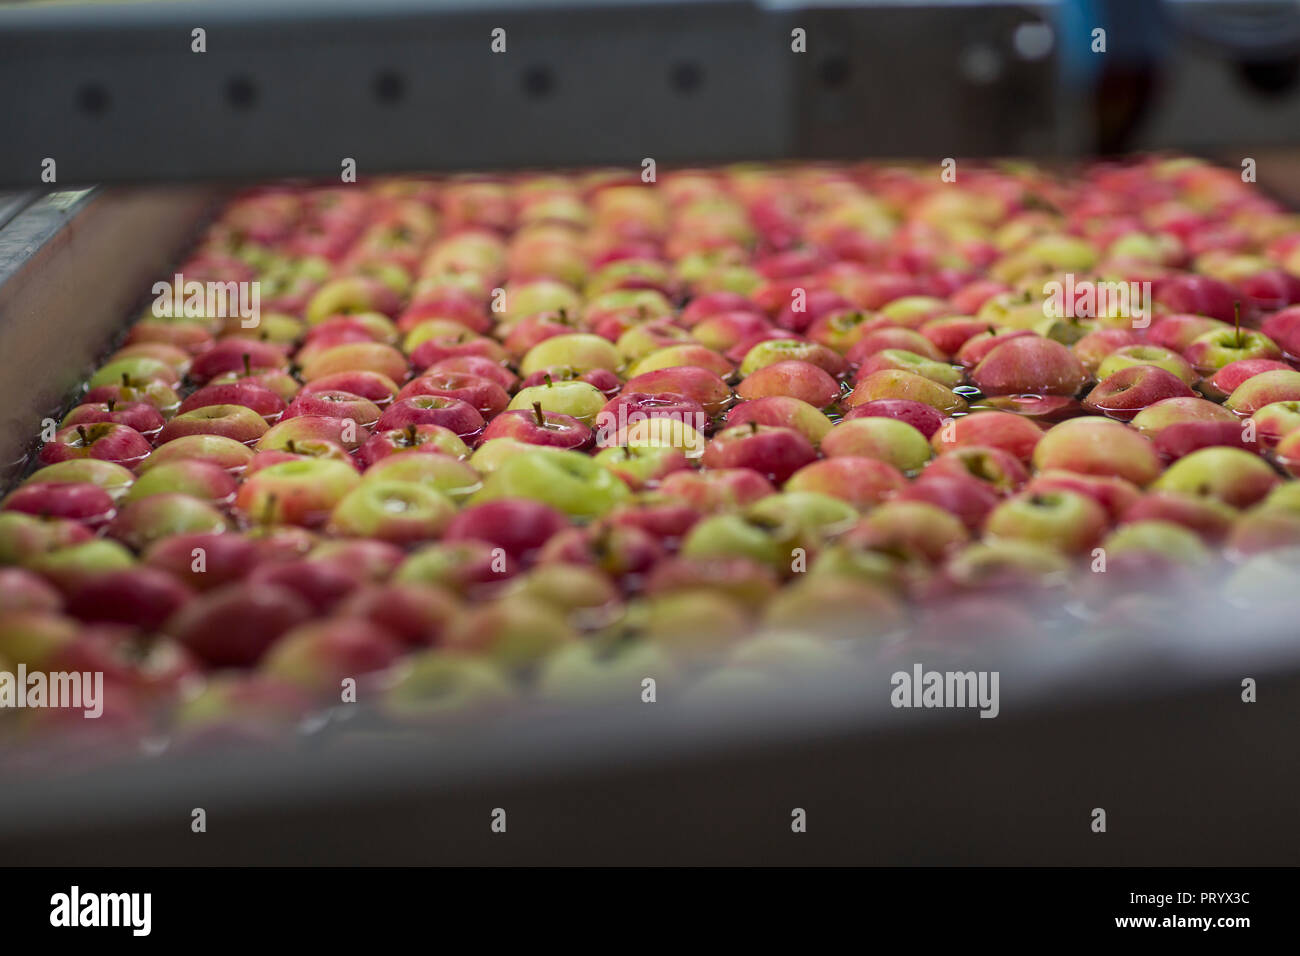 Apple factory, apples in water - Stock Image